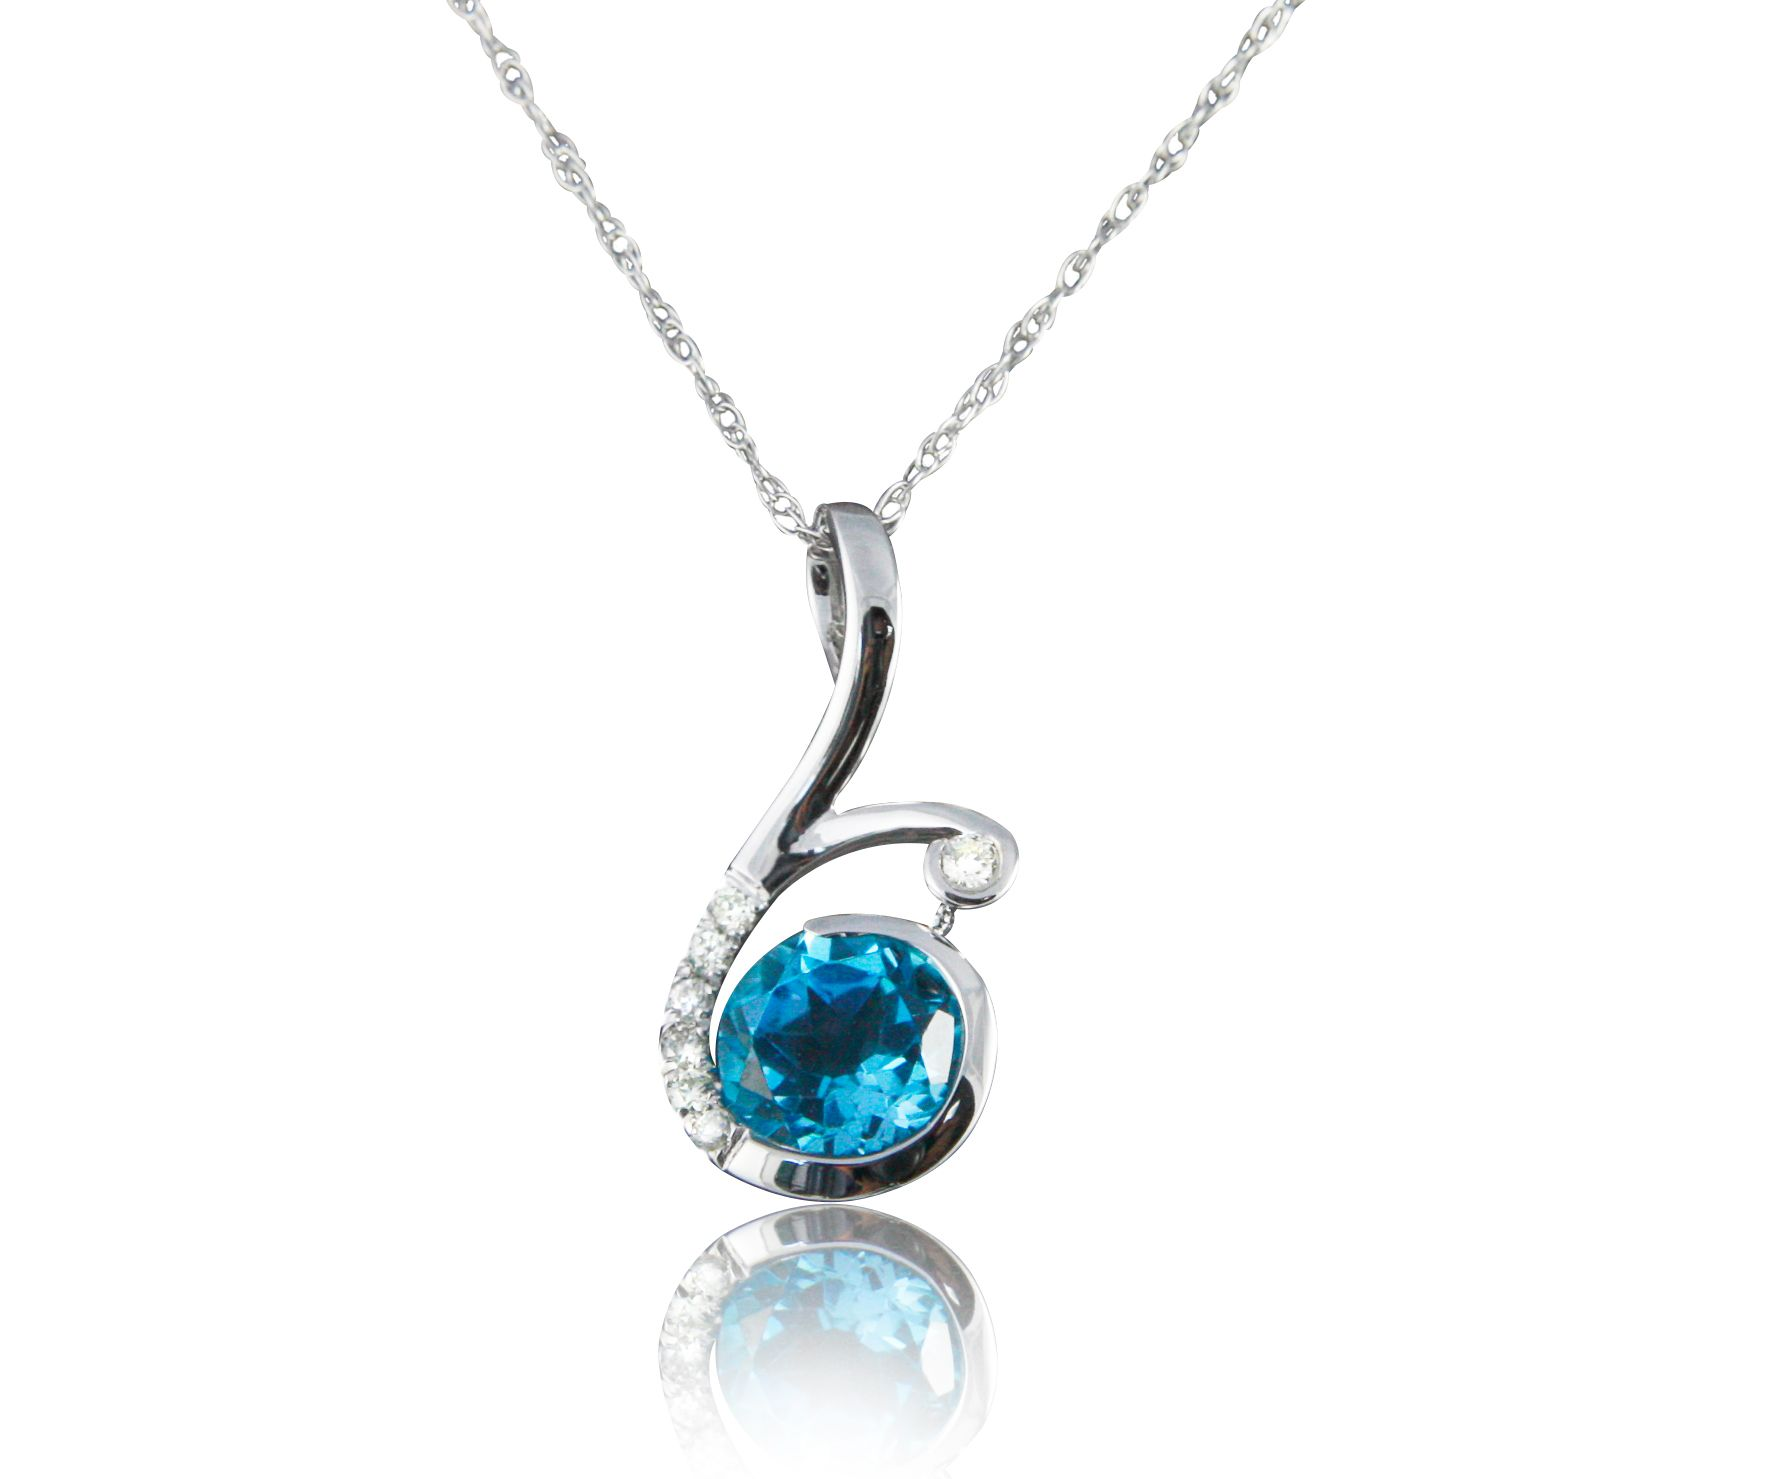 Feel as stunning as you'll look in this dazzling .95 carat blue topaz 18″ necklace with round brilliant diamond accents set in 14 karat white gold. The vibrant color of the mesmerizing blue topaz gem is sure to highlight any outfit.